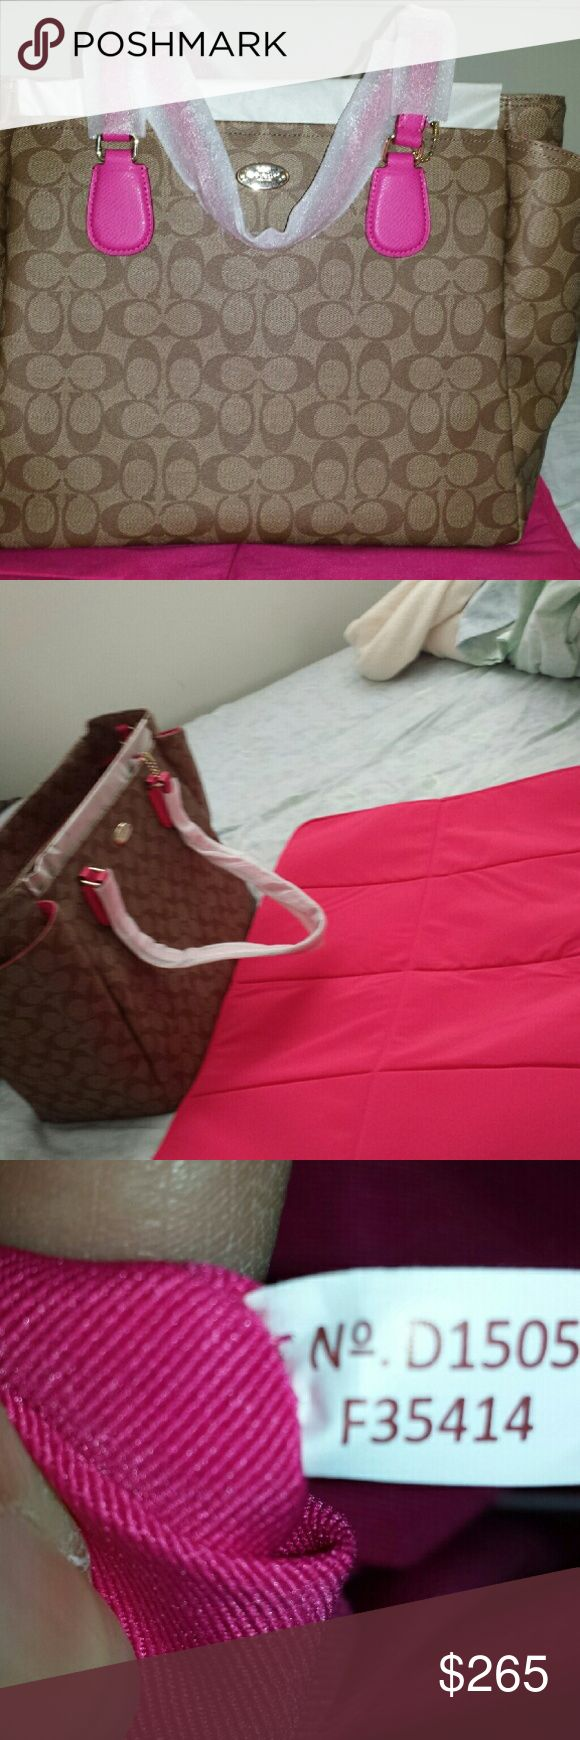 NWT Coach diaper bag with changing pad NWT Coach diaper bag in khaki/pink ruby coated canvas. Comes with removable long strap and changing pad. Coach Bags